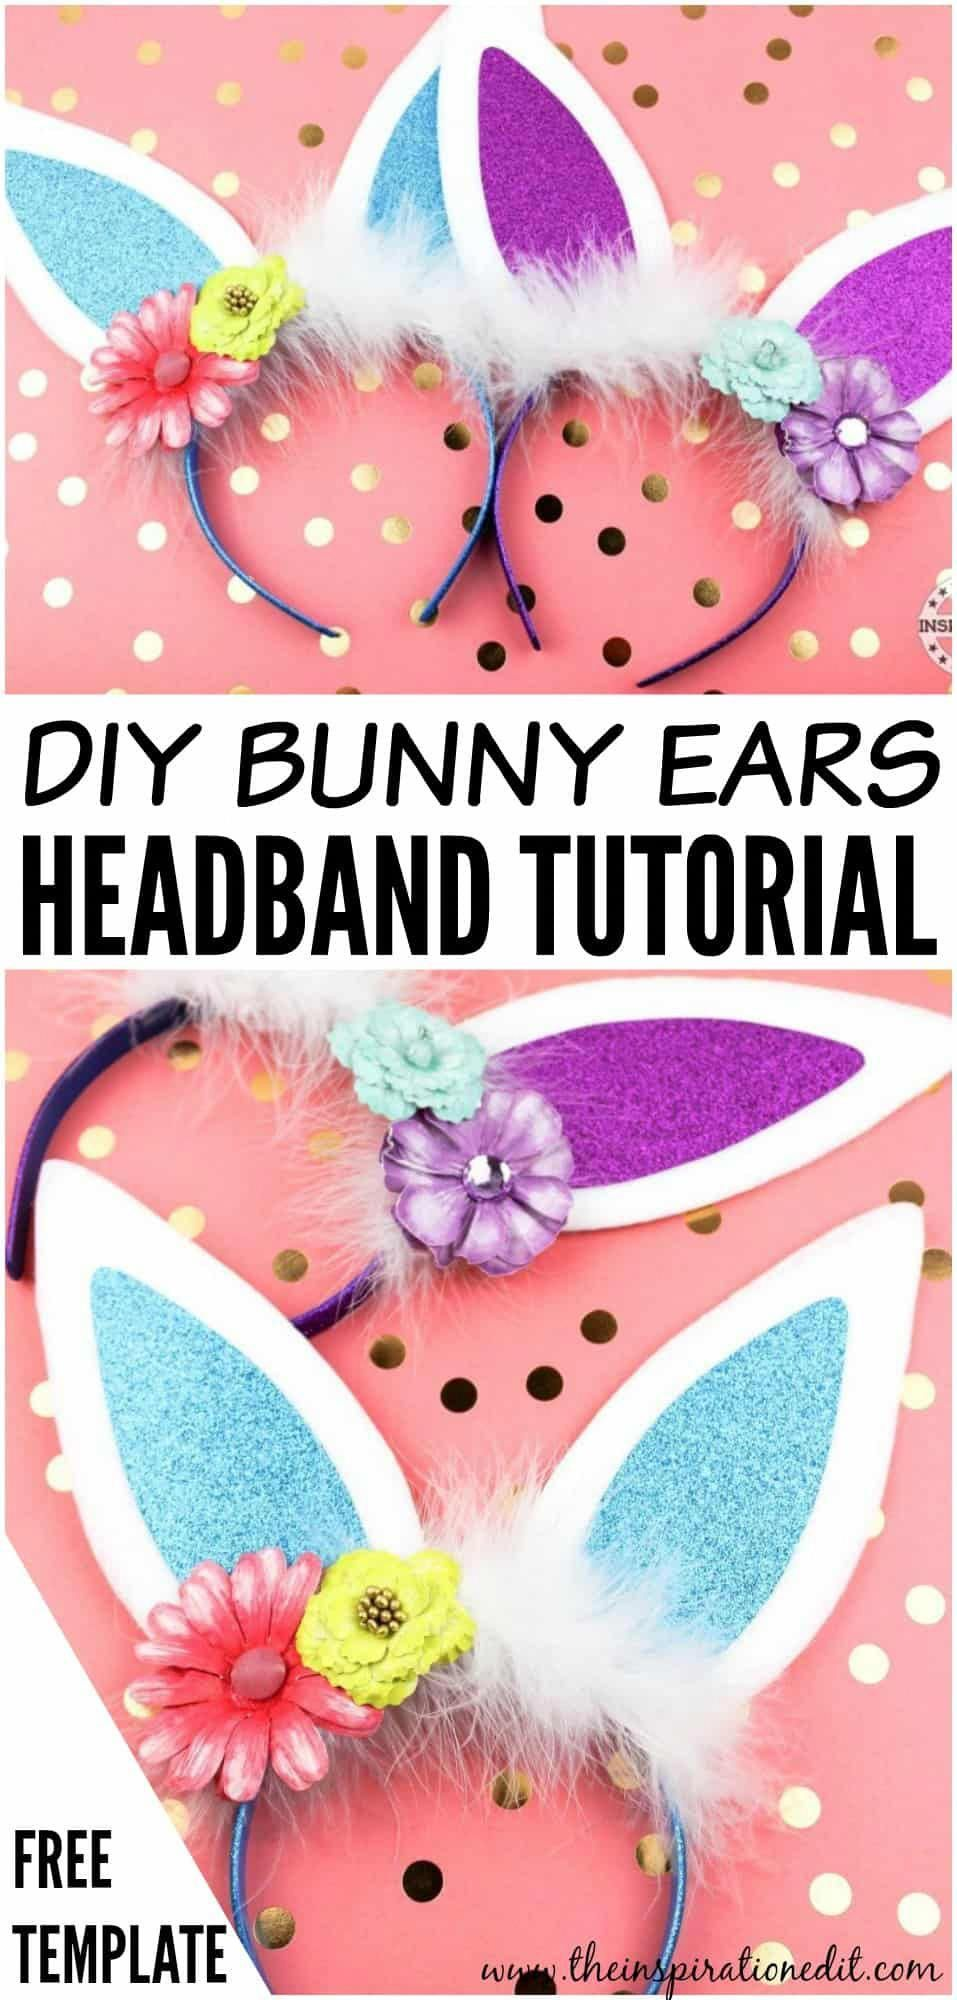 Today we have a gorgeous and fun Bunny ears headband tutorial which is so so cute I just love these bunny ears and think they would make a lovely Easter gift for the kids...